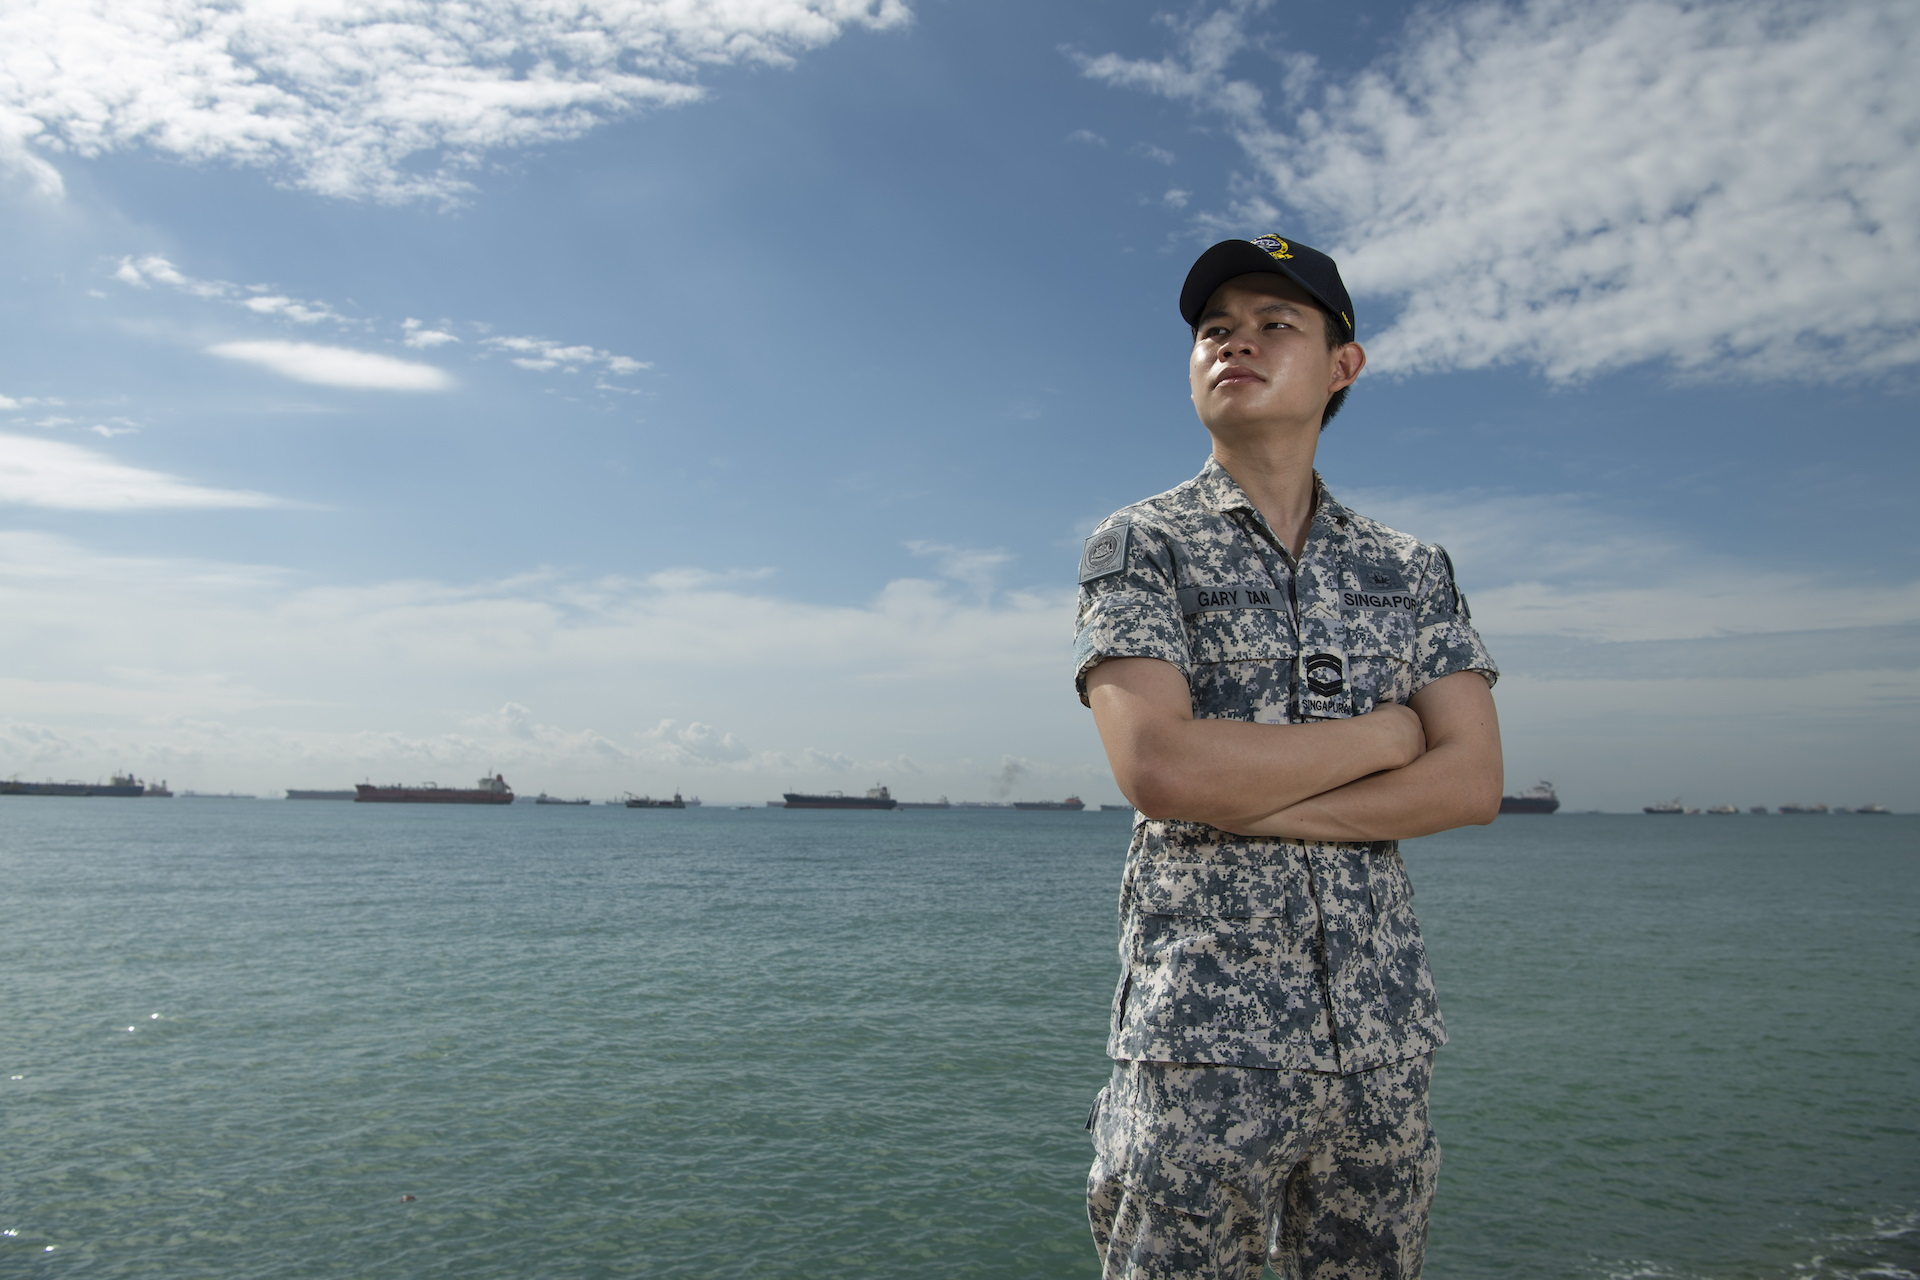 Struggling swimmer who became a Sea Marshal